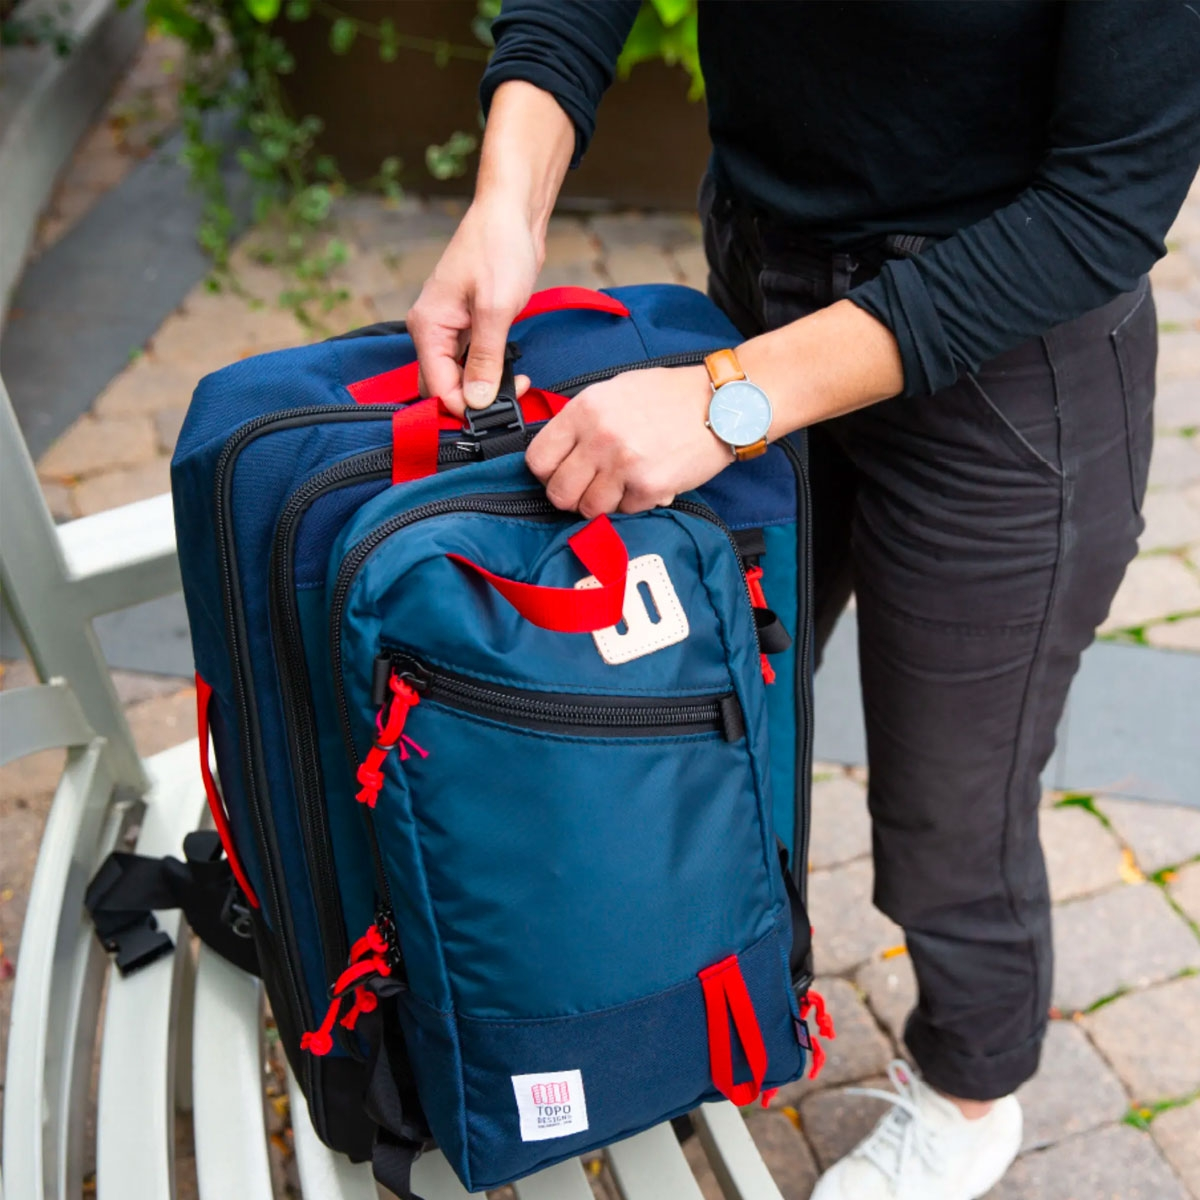 Topo Designs Trip Pack Navy, packfast bag attachment clips